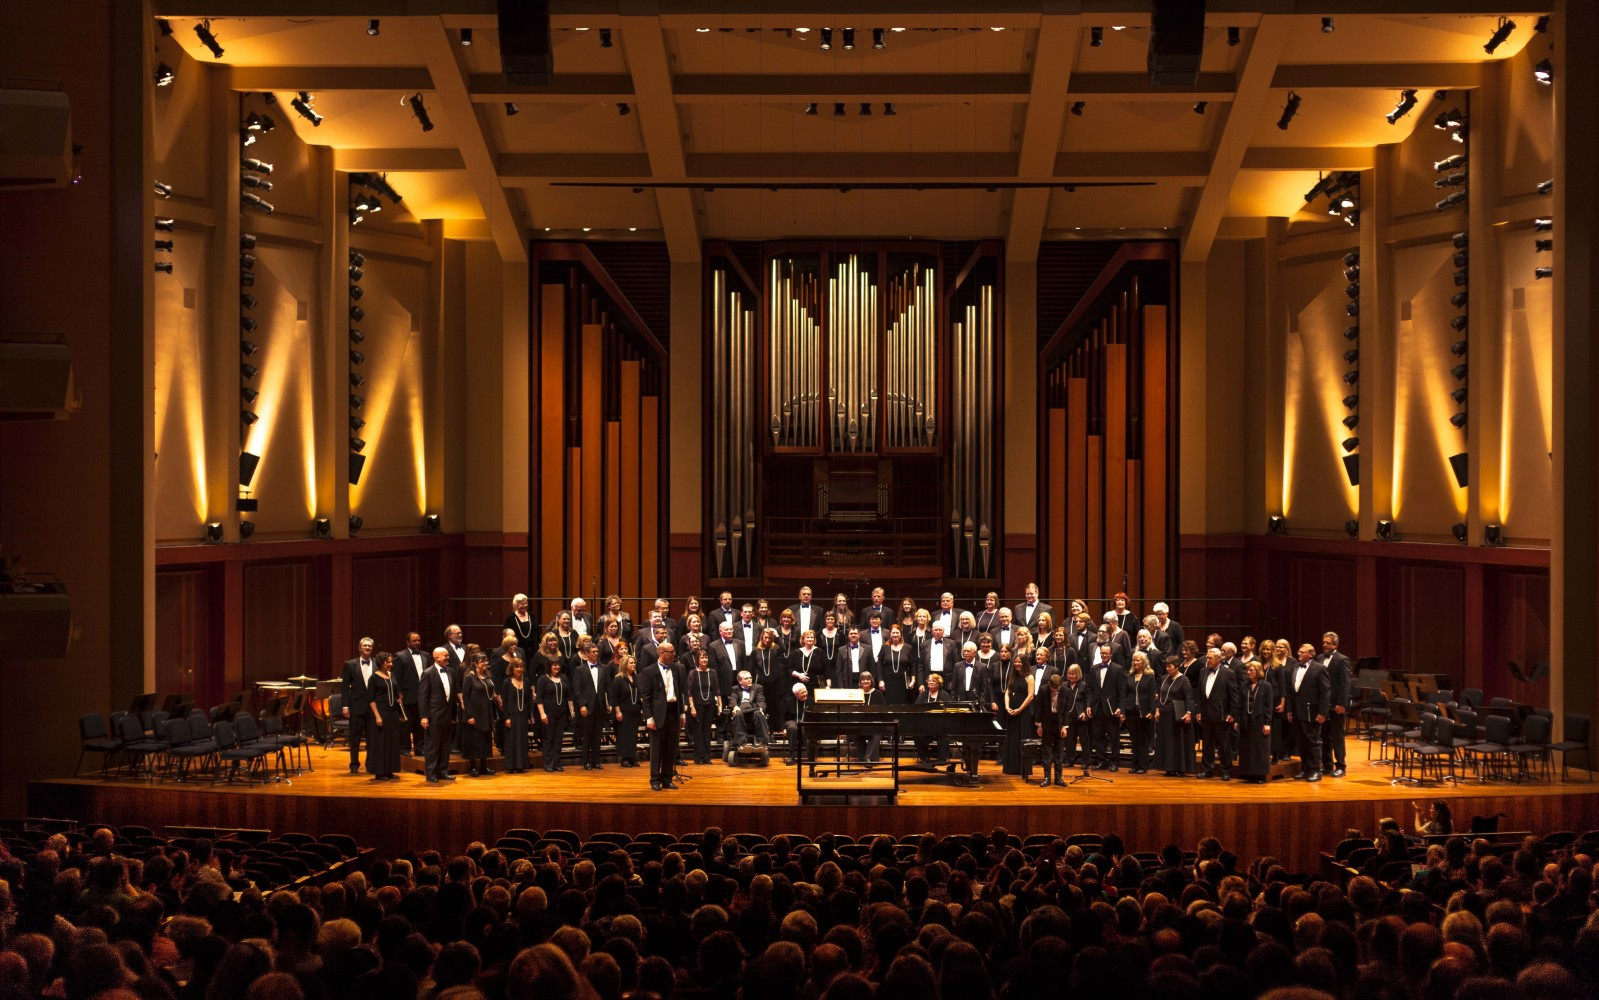 Choir of the Sound. Choir of the Sound at Benaroya Hall 2015, photo by Dennis Riggs/Selenea Photo Art